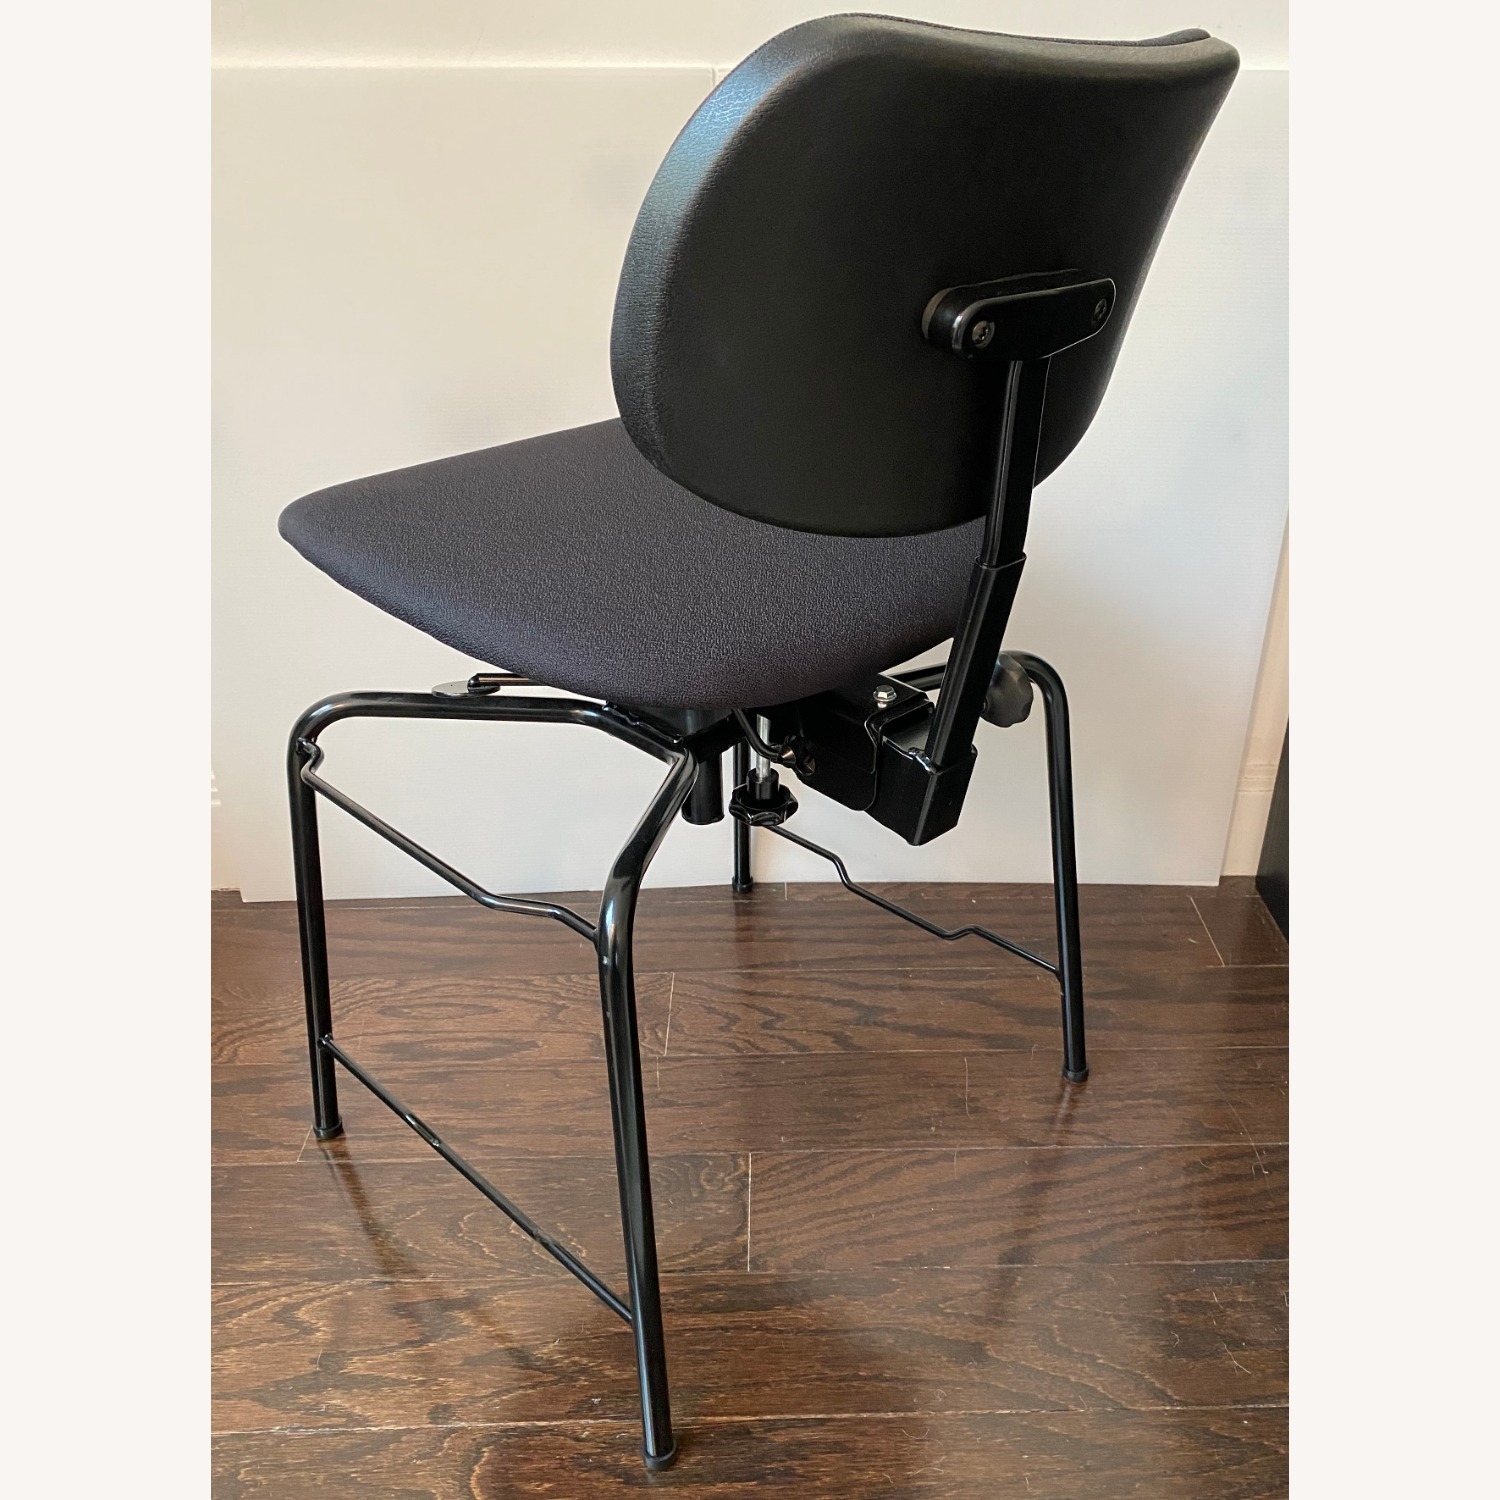 "Wilde + Spieth ""Orchestra"" Chair Black - image-12"